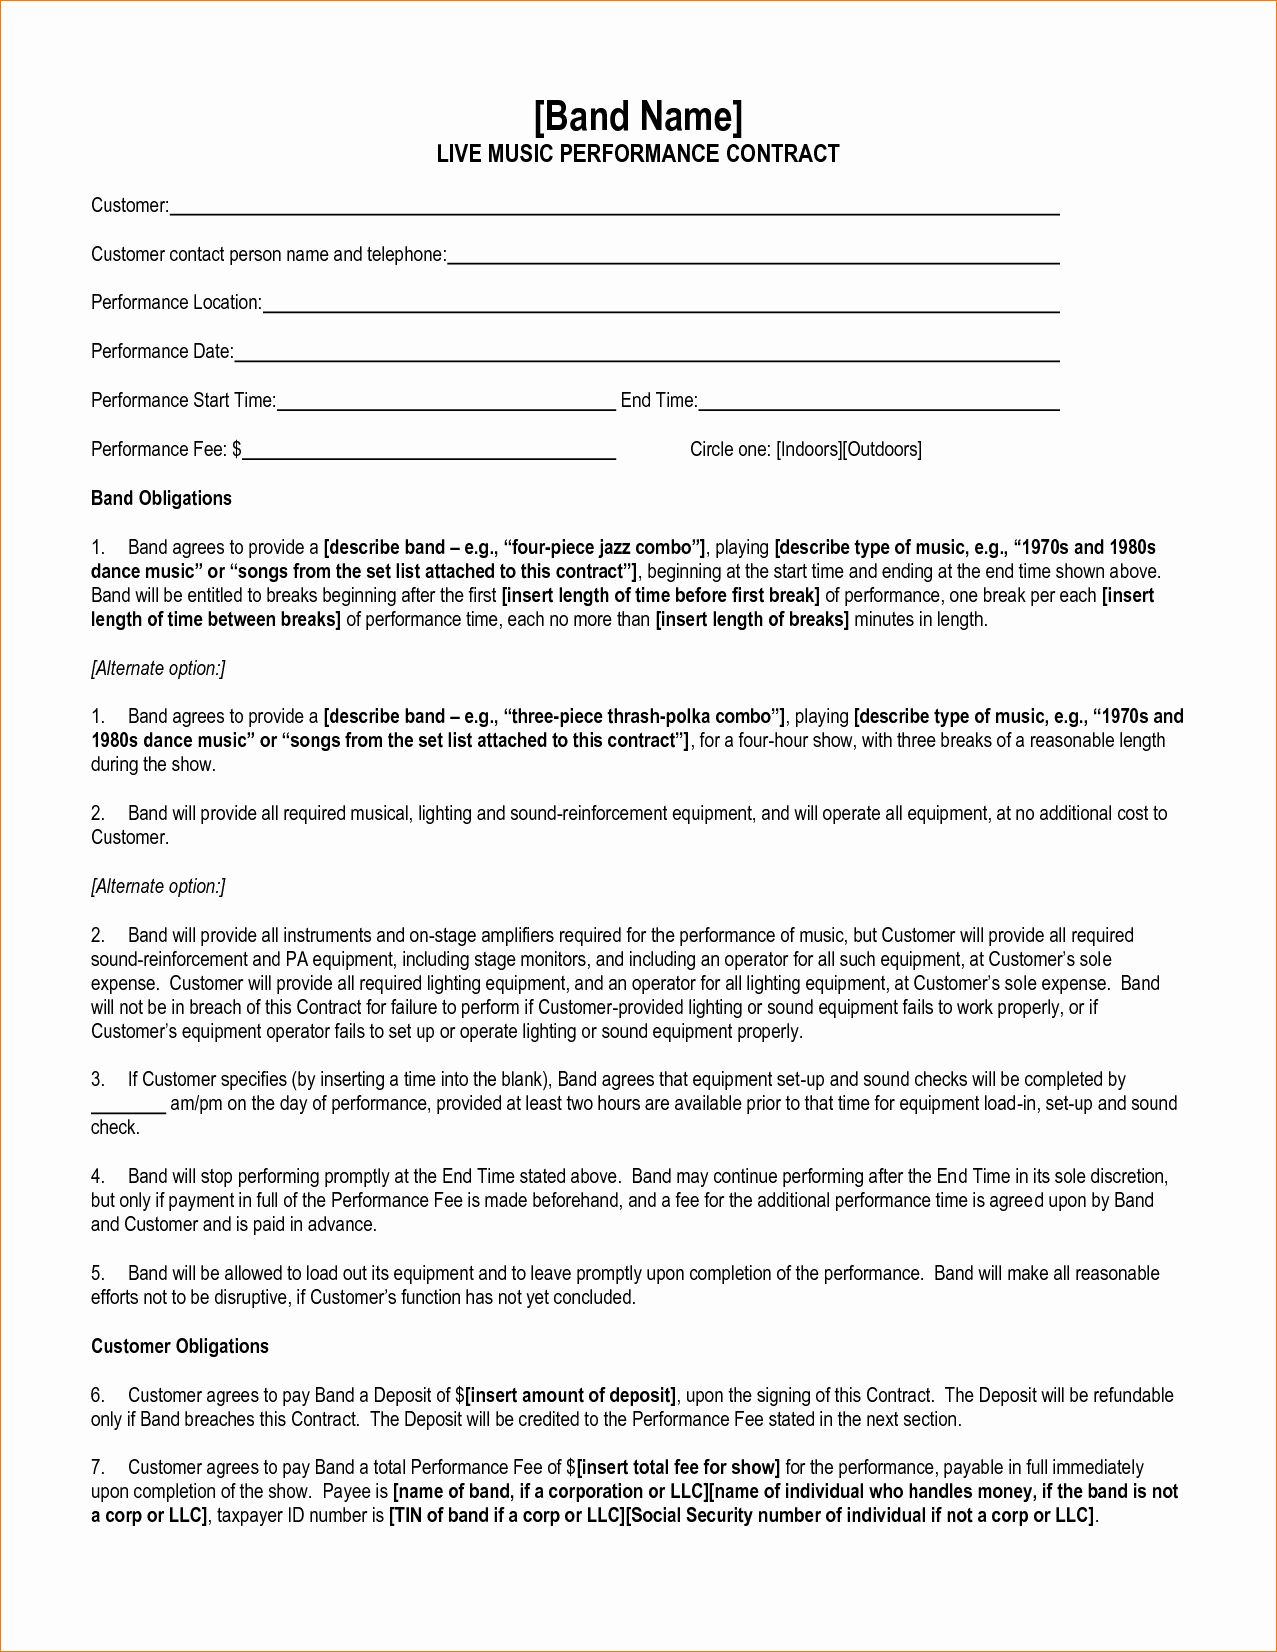 Music performance contract template in 2020 contract